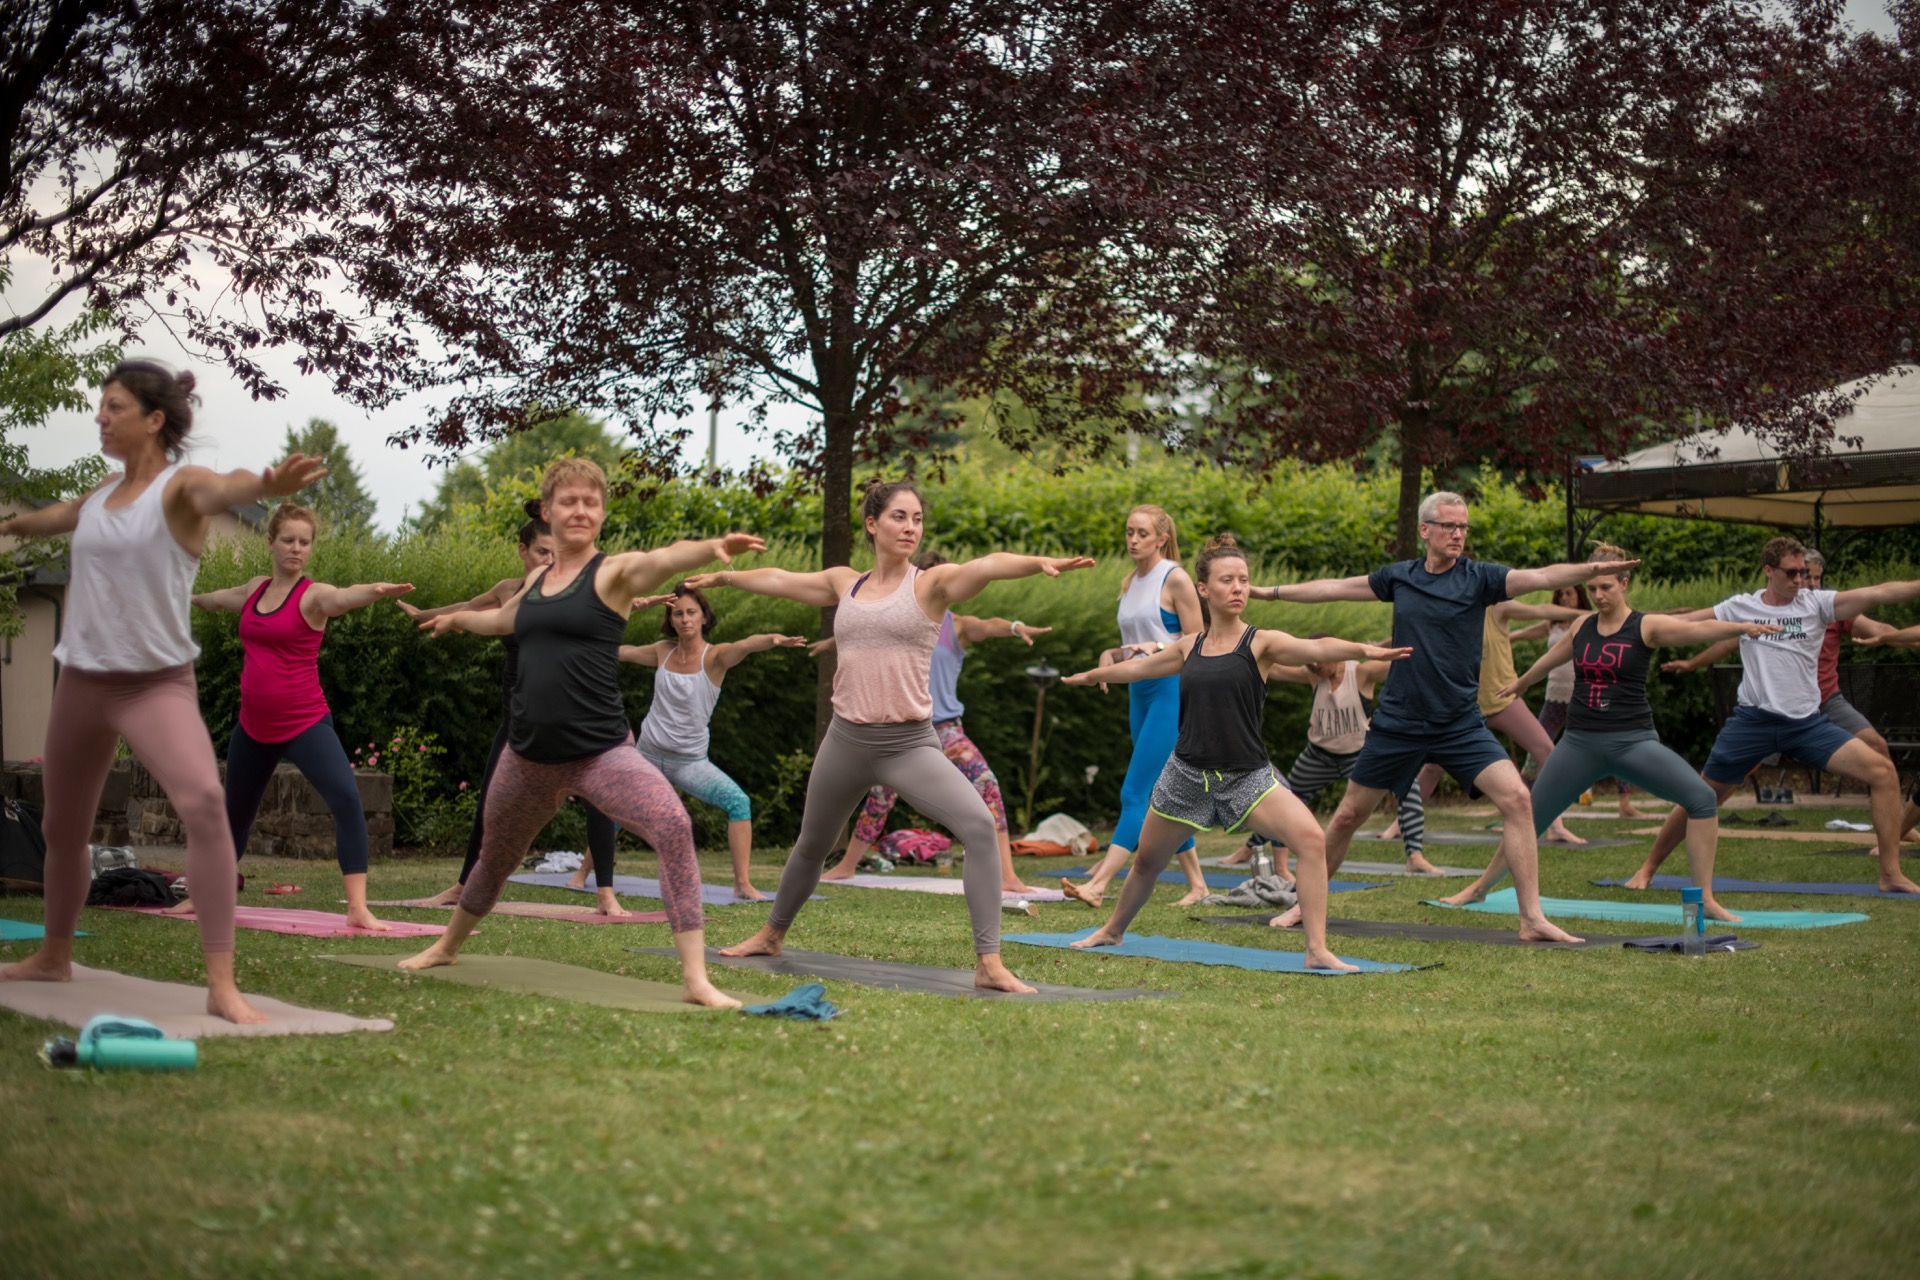 Hie-Kim-Friends-2019-Yoga-Retreat-Alina-Matis-Photography-131 - Hie Kim Yoga - Yoga Retreat - Yoga Workshops und Reisen